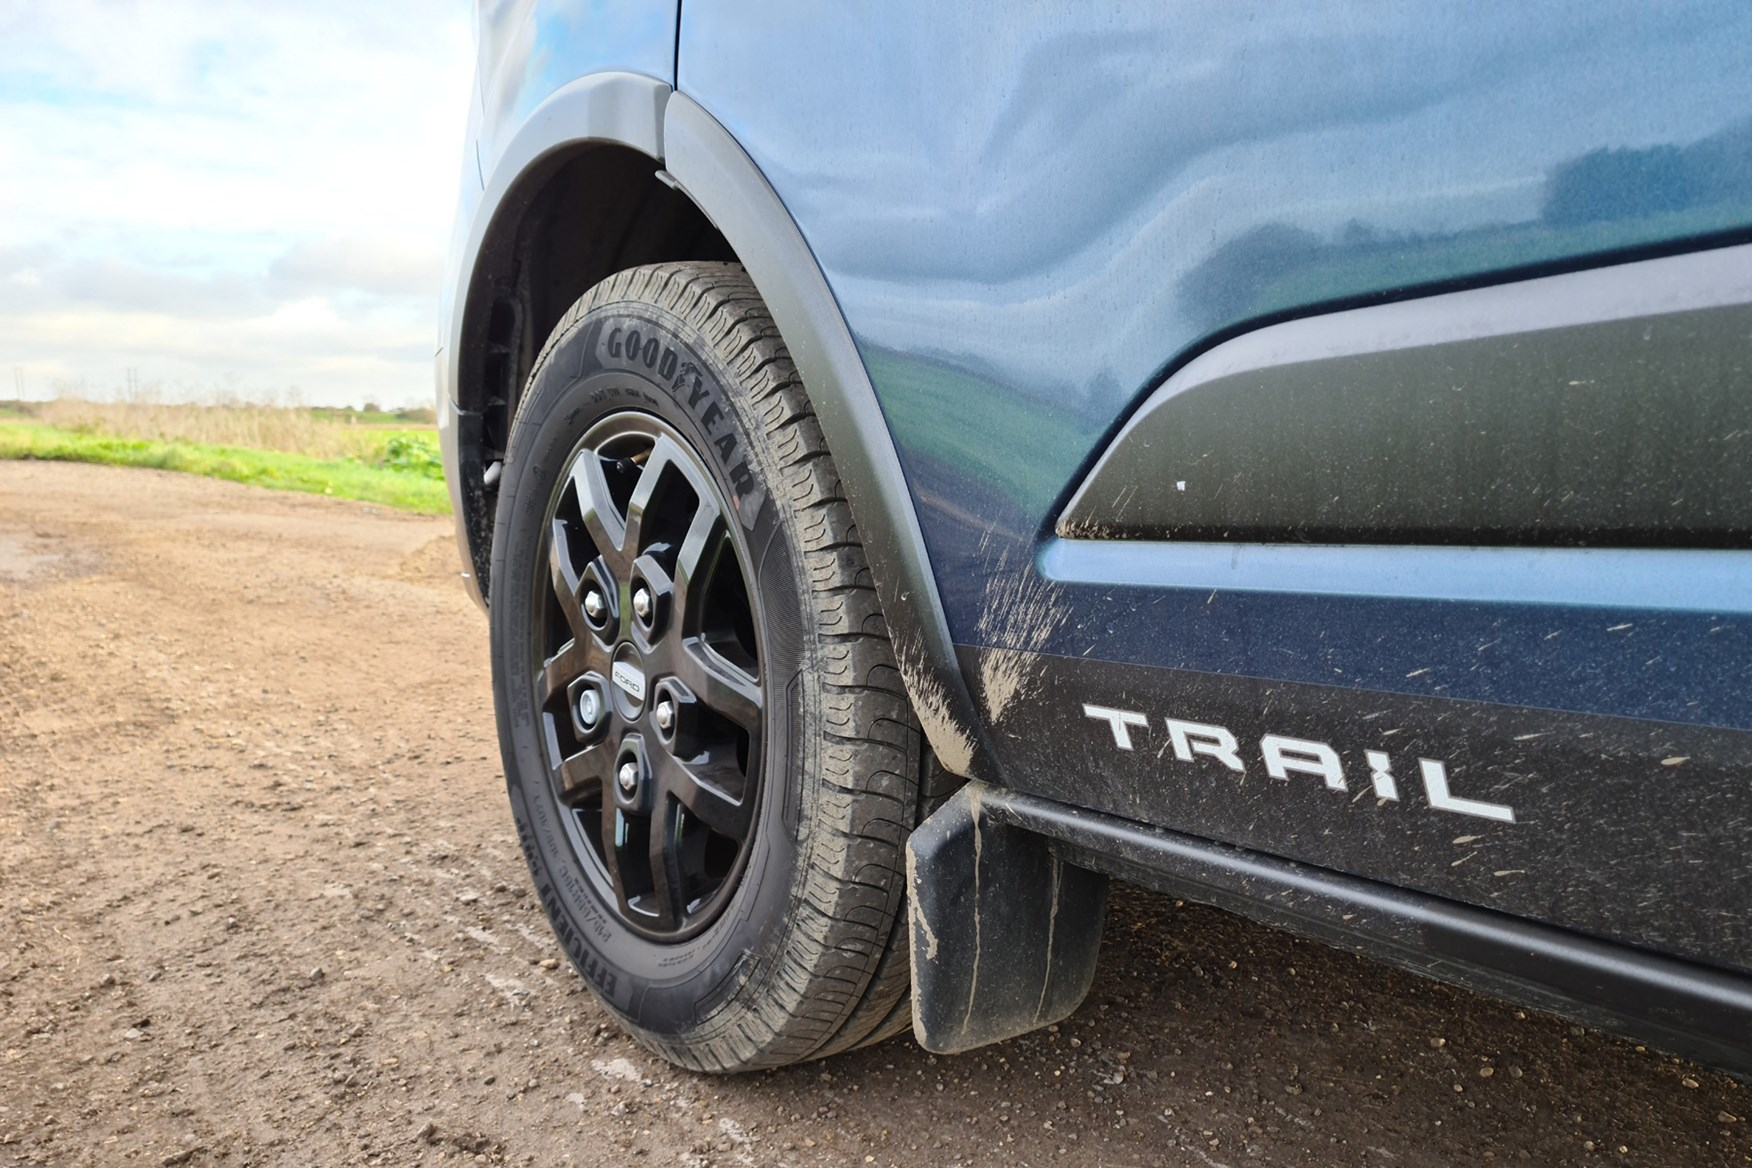 Ford Transit Custom Trail review, L2, DCiV, 2020, Trail logo, mudflaps and 16-inch alloy wheels